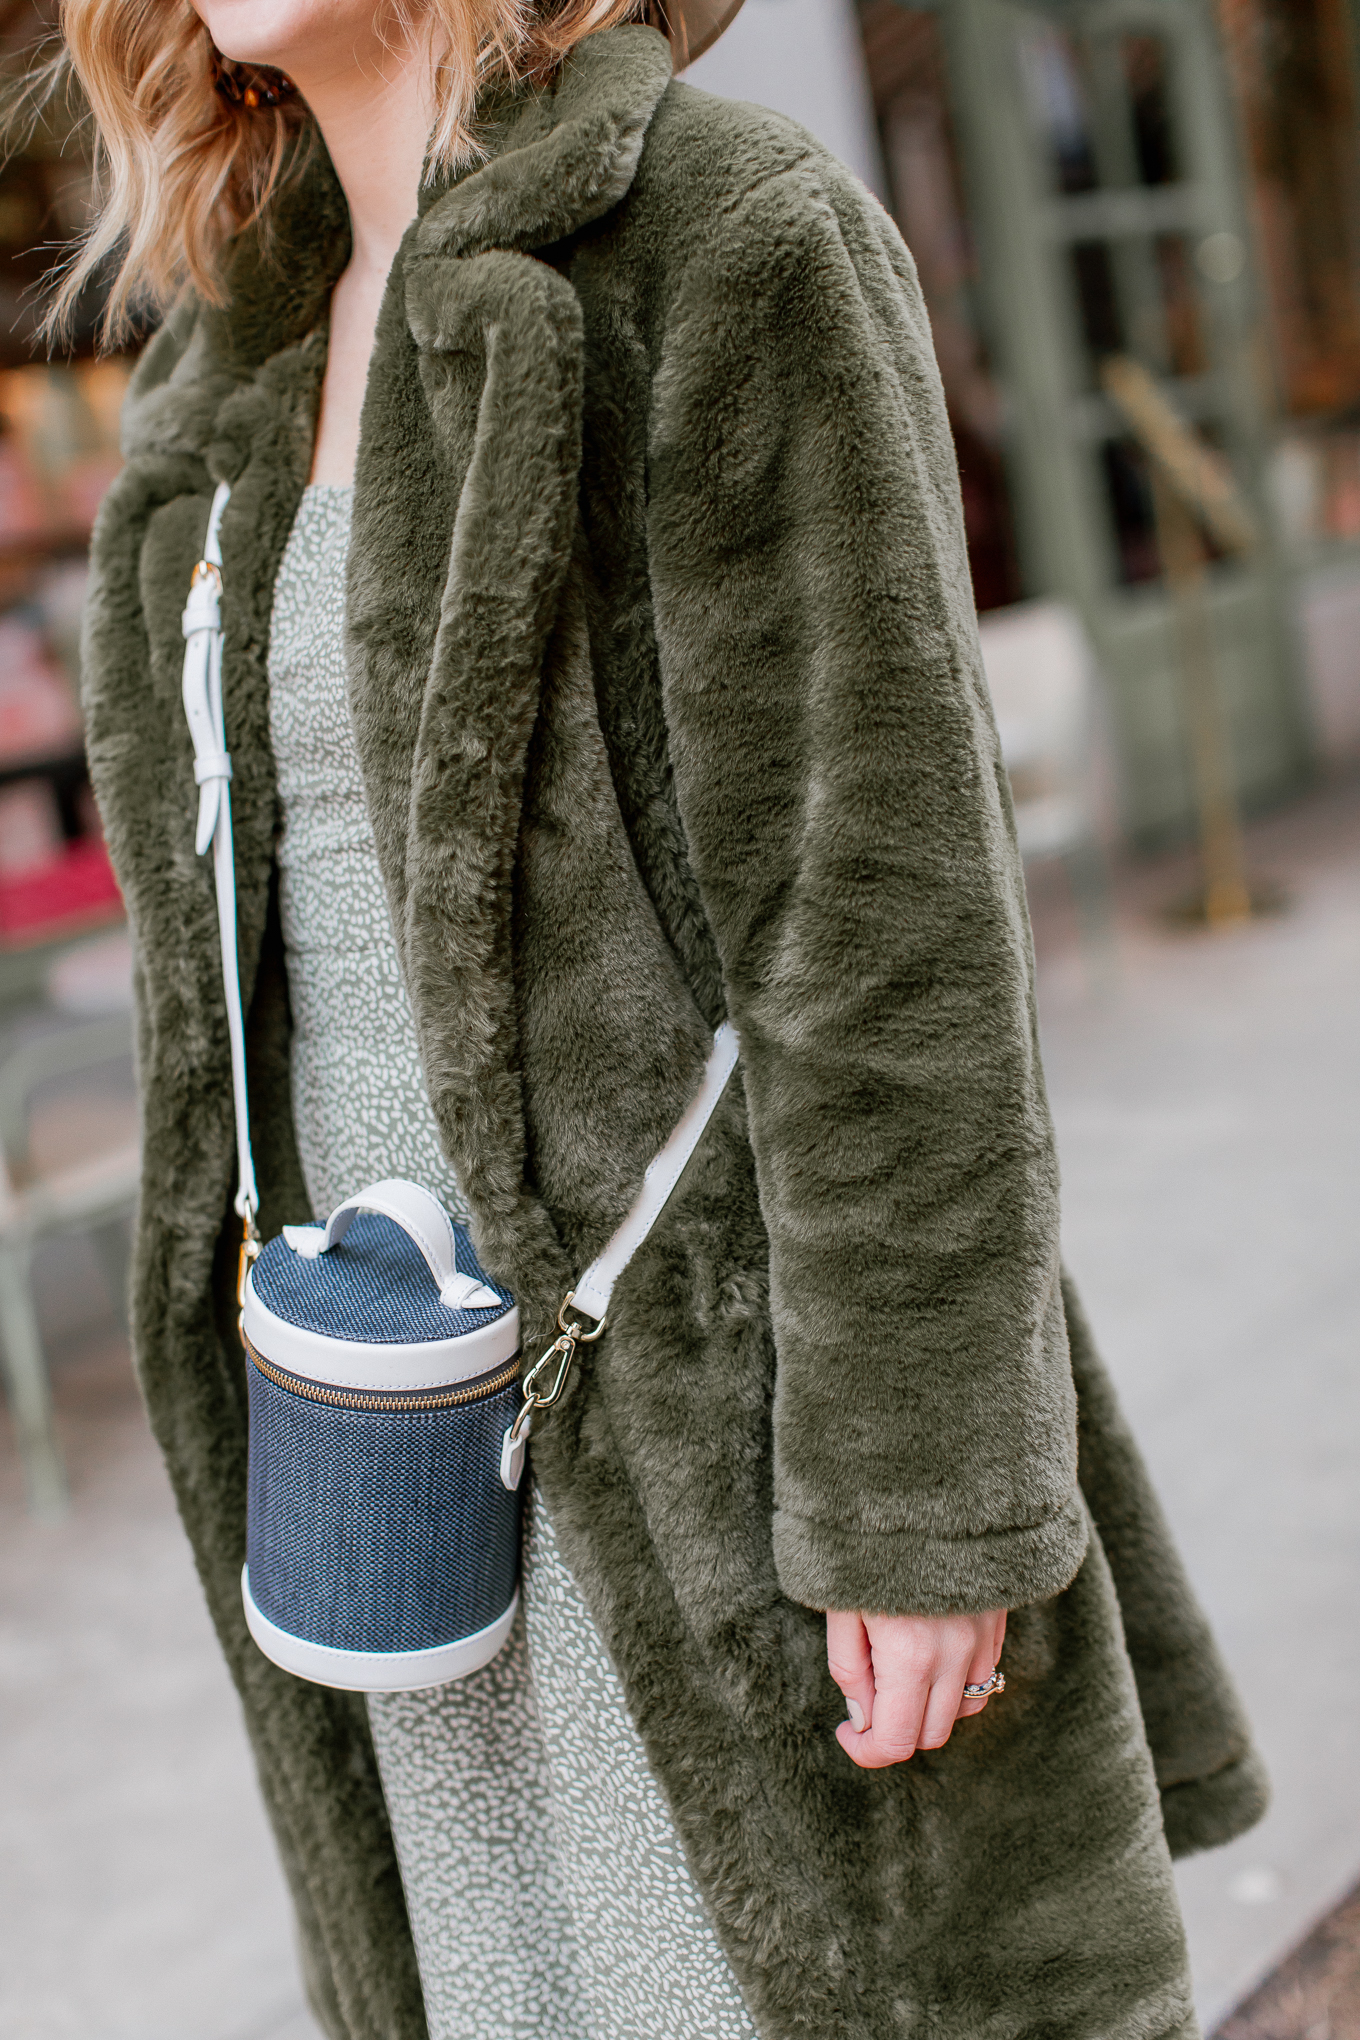 Paravel Capsule Bag, Navy and White Bag   Louella Reese